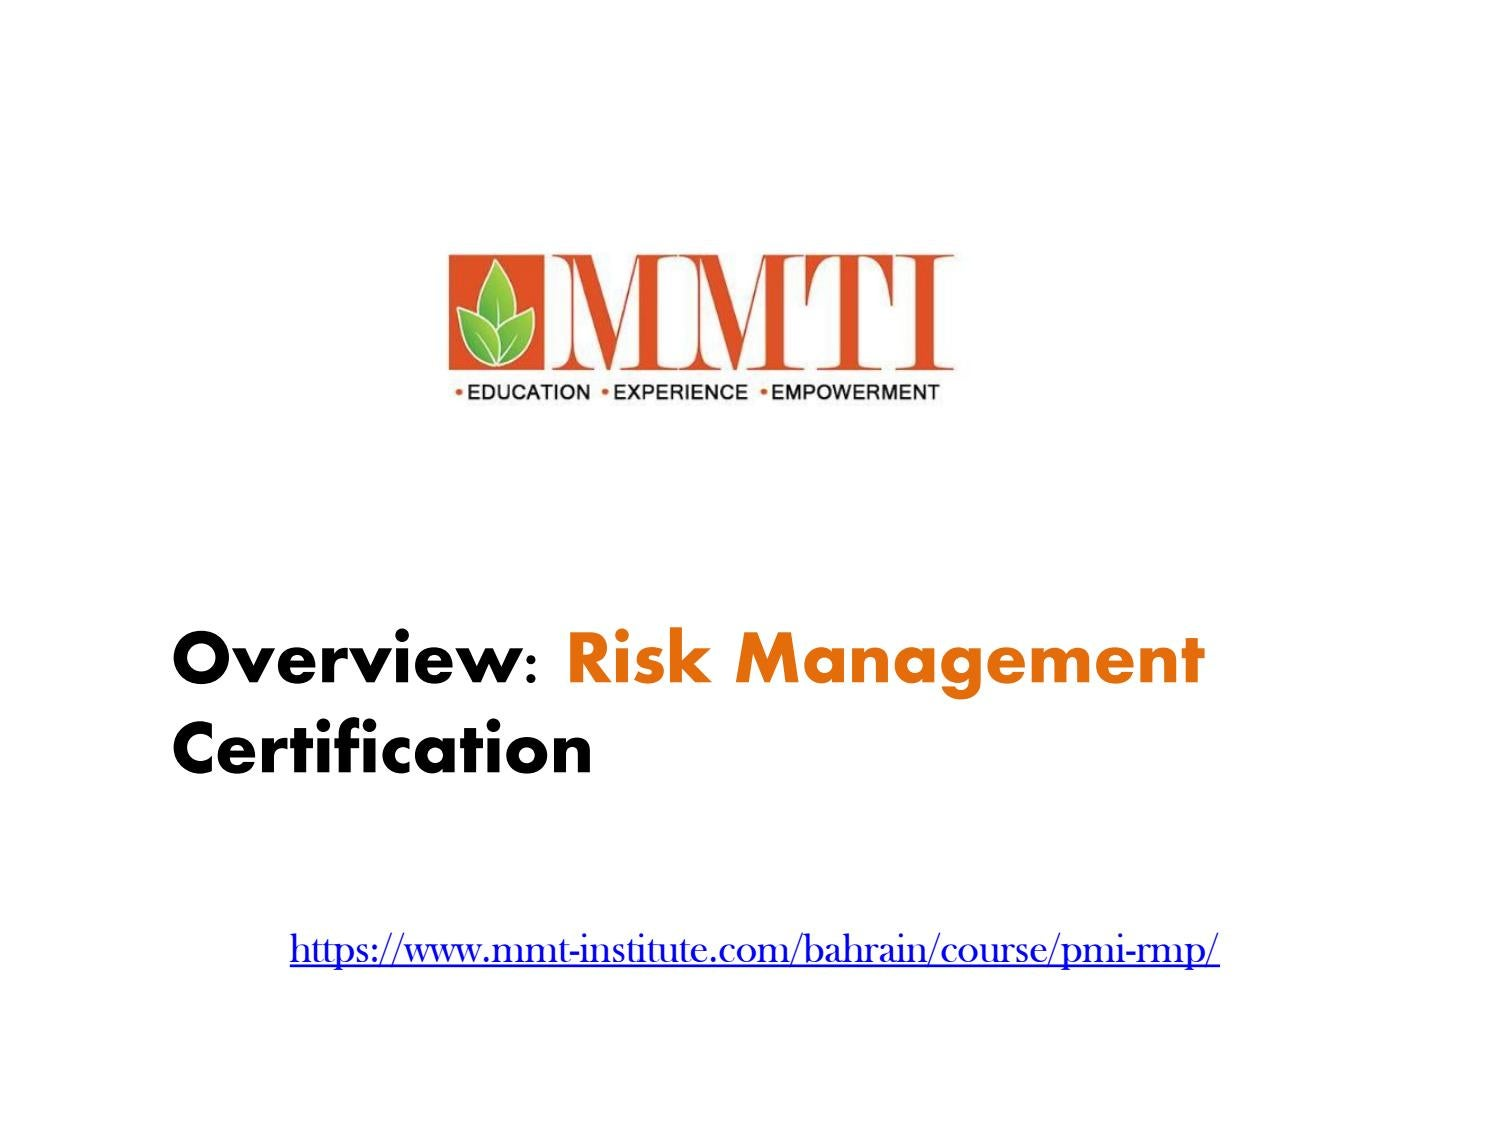 Overview Risk Management Certification In Qatar By Mmti Issuu